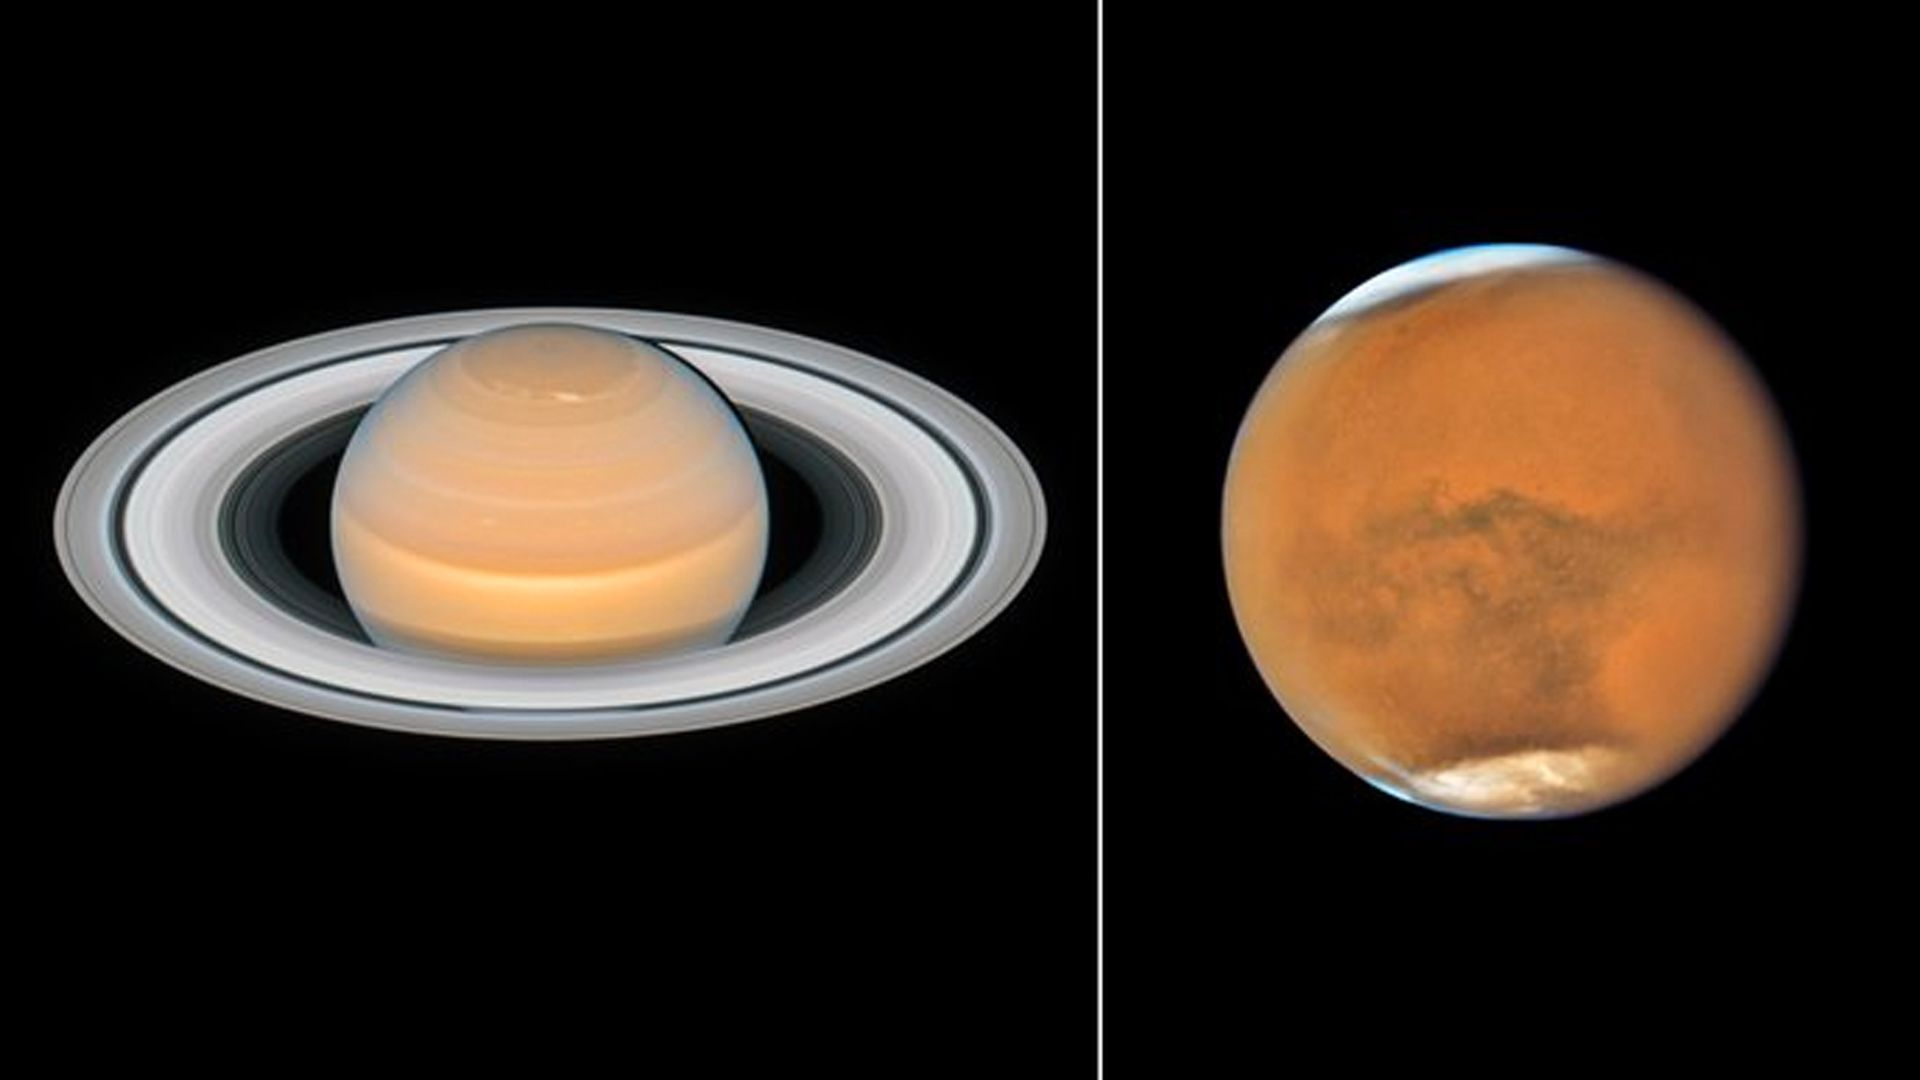 Hubble Telescope takes sharp new photos of Saturn and Mars